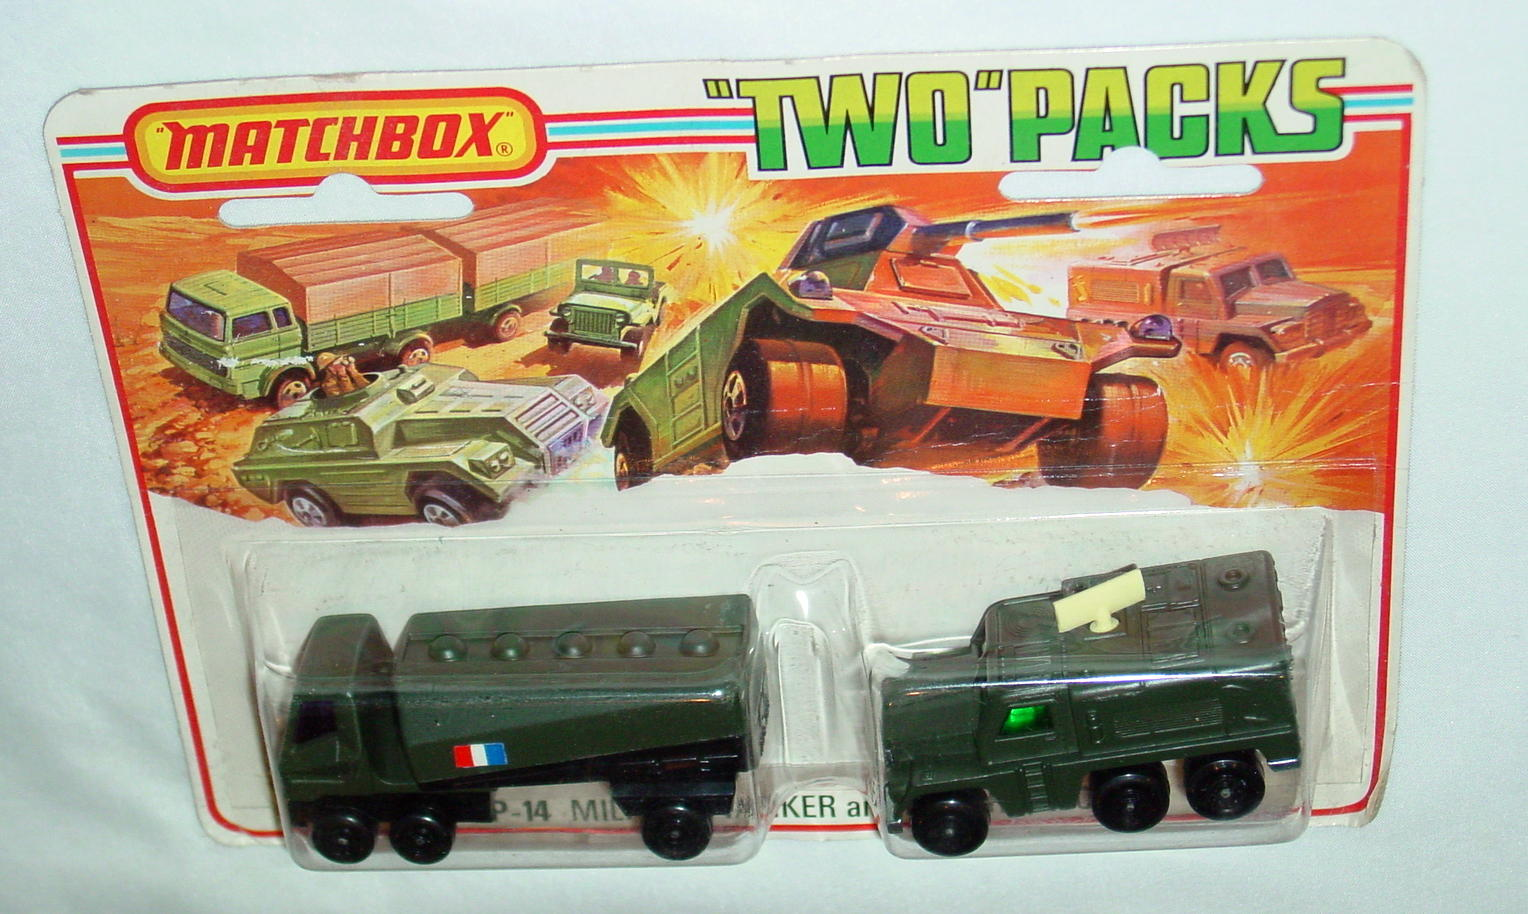 Twin Pack 14 A 2 - OL DRAB 63B6 Tanker French 16A3 Badger open BP